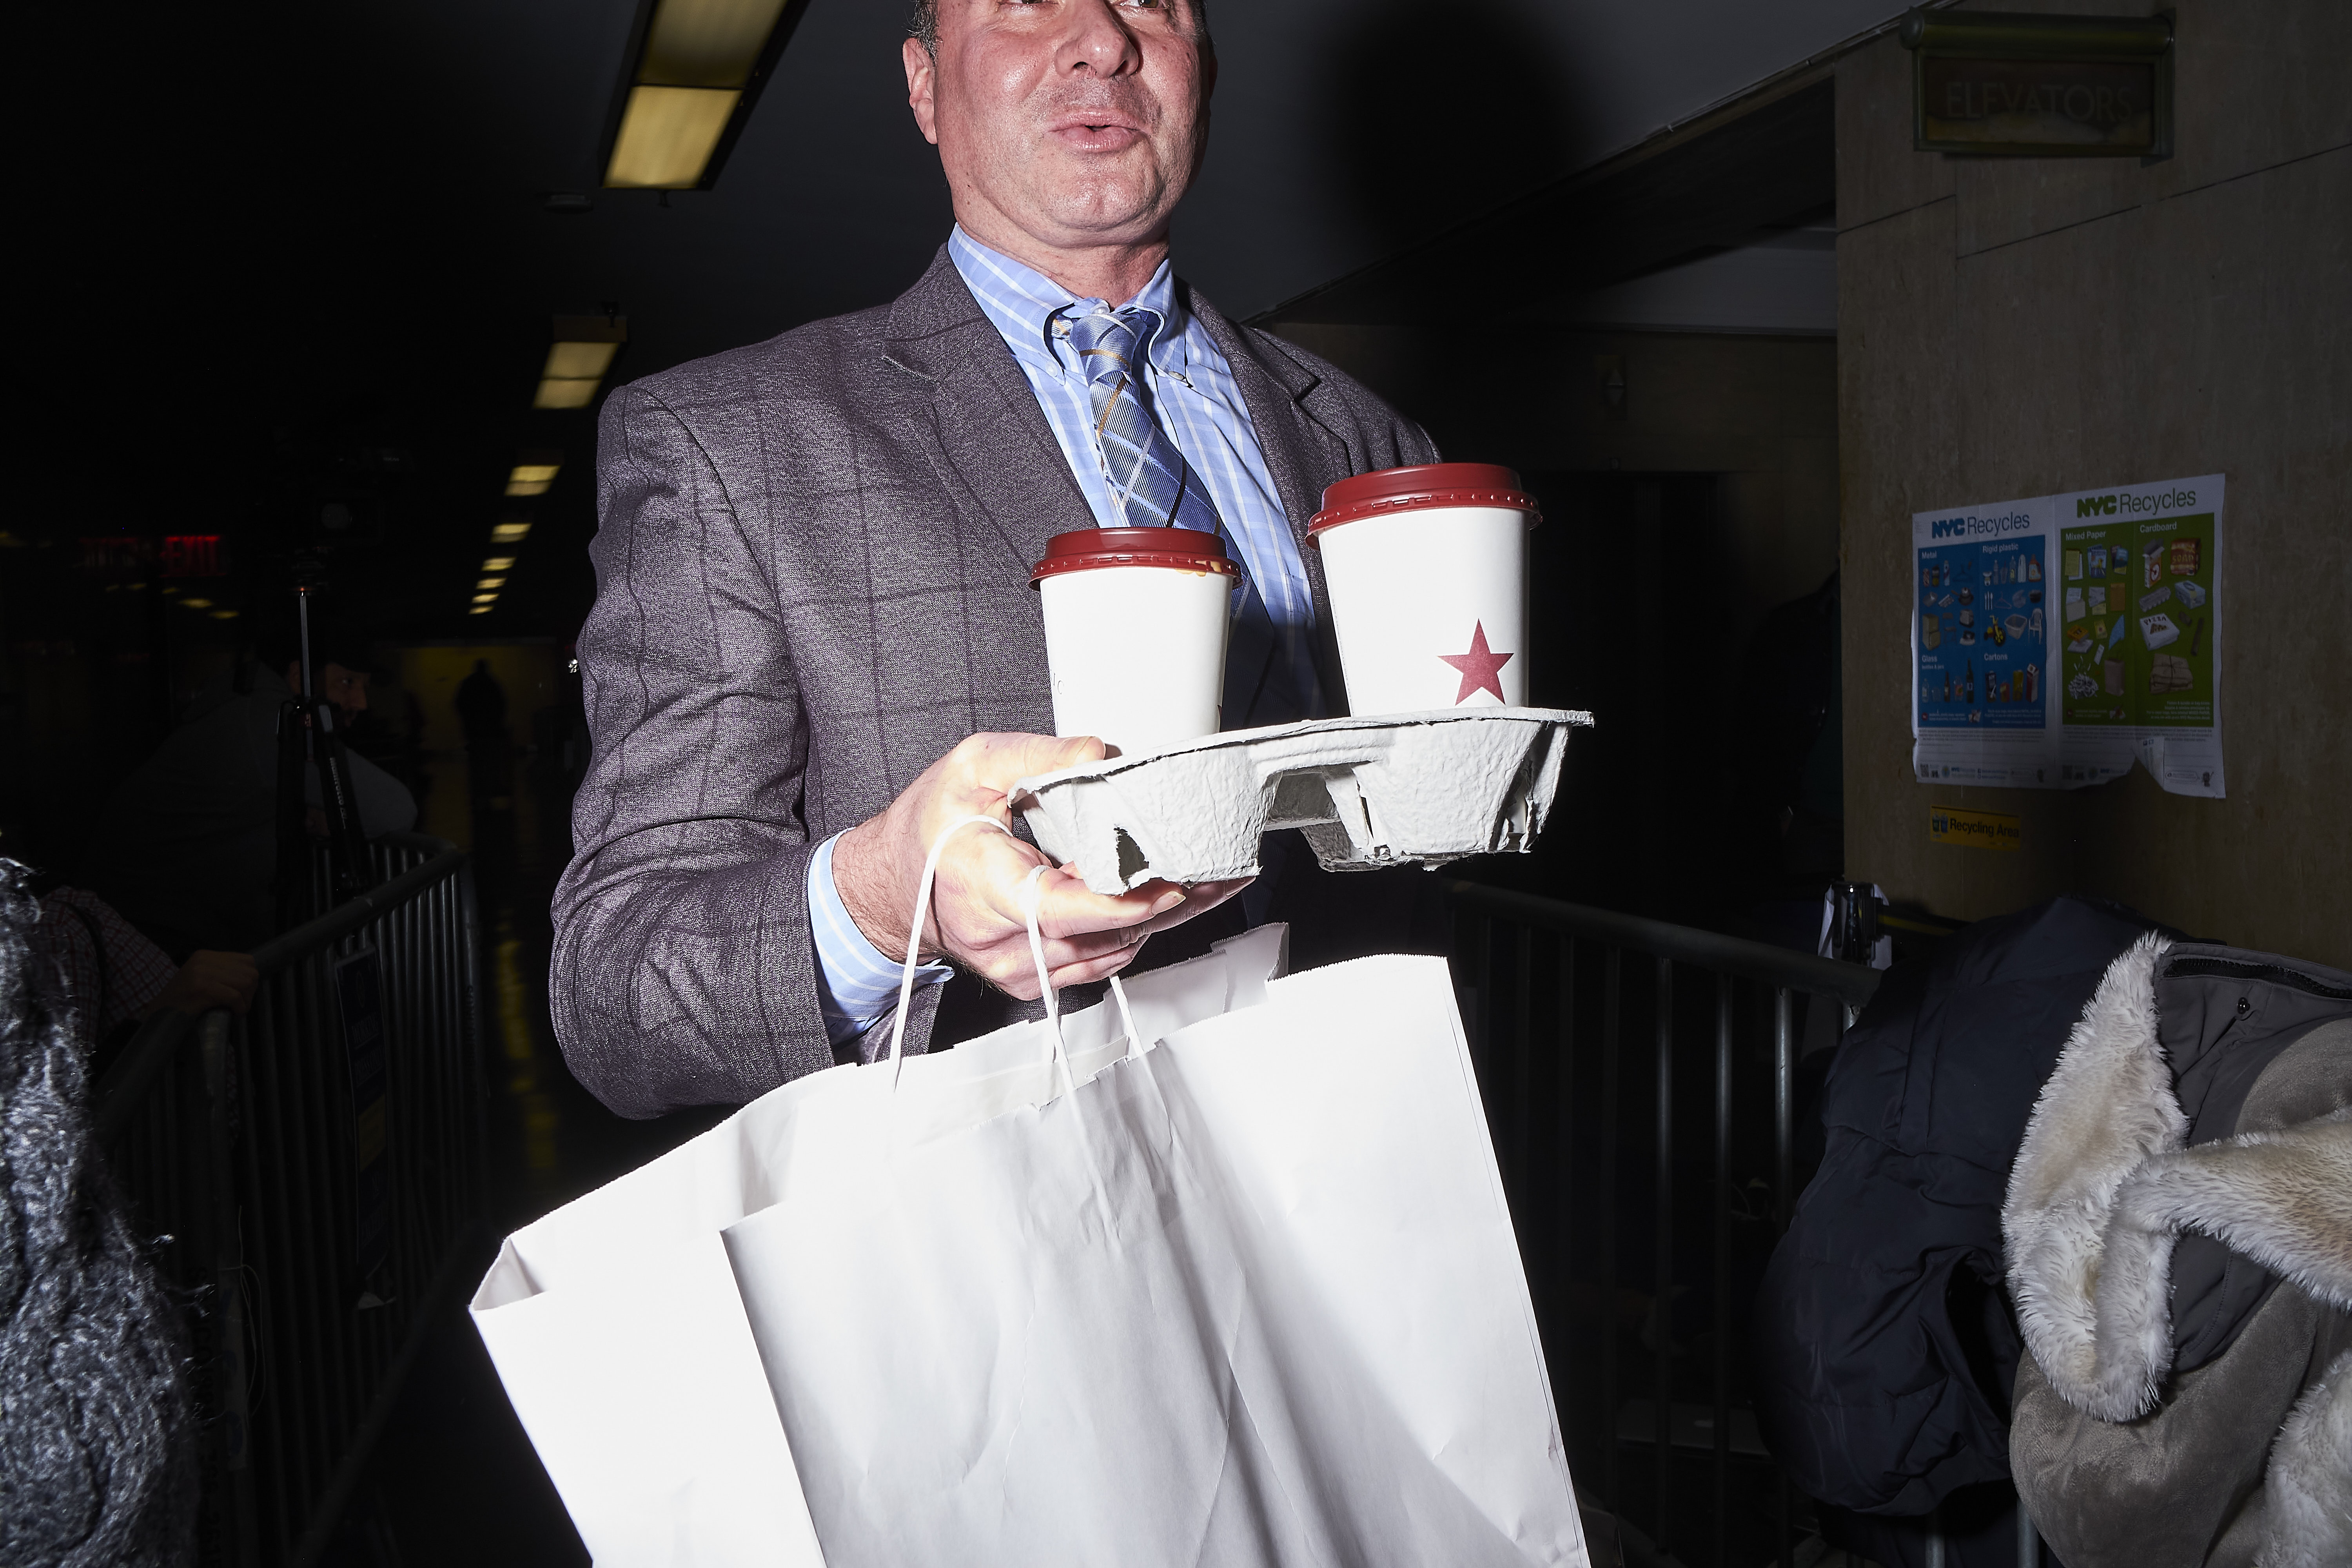 A member of Weinstein's legal team delivers lunch to his client in the courtroom on Jan. 22